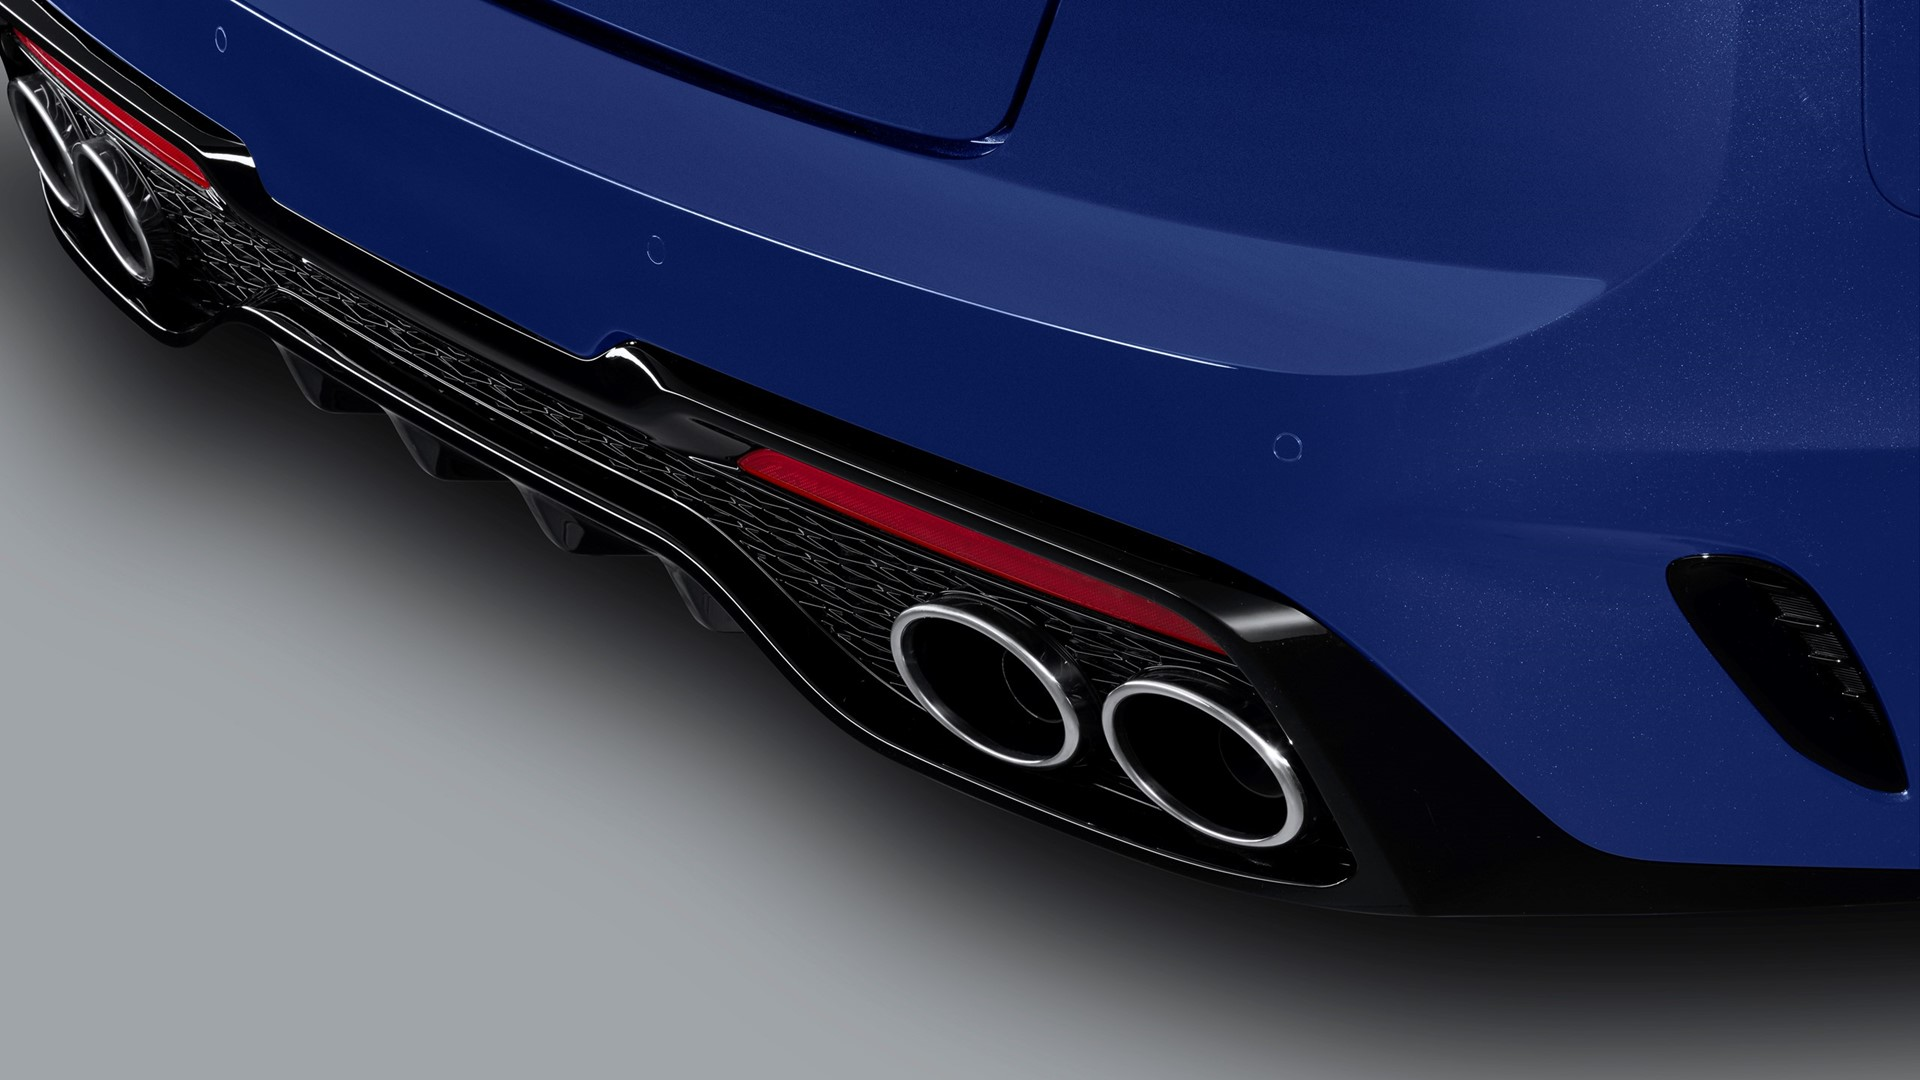 More tech, power and safety for upgraded Kia Stinger - Image 2